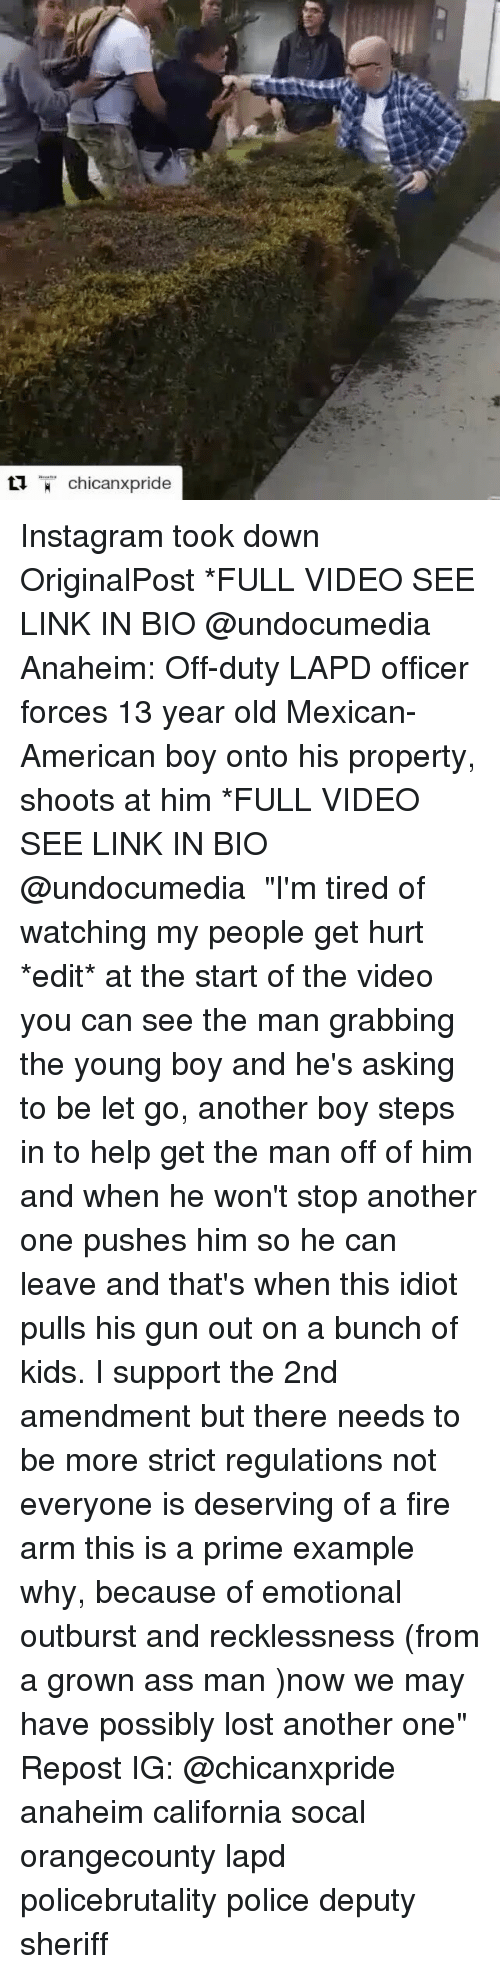 "Another One, Another One, and Fire: chicanxpride Instagram took down OriginalPost *FULL VIDEO SEE LINK IN BIO @undocumedia Anaheim: Off-duty LAPD officer forces 13 year old Mexican-American boy onto his property, shoots at him *FULL VIDEO SEE LINK IN BIO @undocumedia ・・・ ""I'm tired of watching my people get hurt *edit* at the start of the video you can see the man grabbing the young boy and he's asking to be let go, another boy steps in to help get the man off of him and when he won't stop another one pushes him so he can leave and that's when this idiot pulls his gun out on a bunch of kids. I support the 2nd amendment but there needs to be more strict regulations not everyone is deserving of a fire arm this is a prime example why, because of emotional outburst and recklessness (from a grown ass man )now we may have possibly lost another one"" Repost IG: @chicanxpride anaheim california socal orangecounty lapd policebrutality police deputy sheriff"